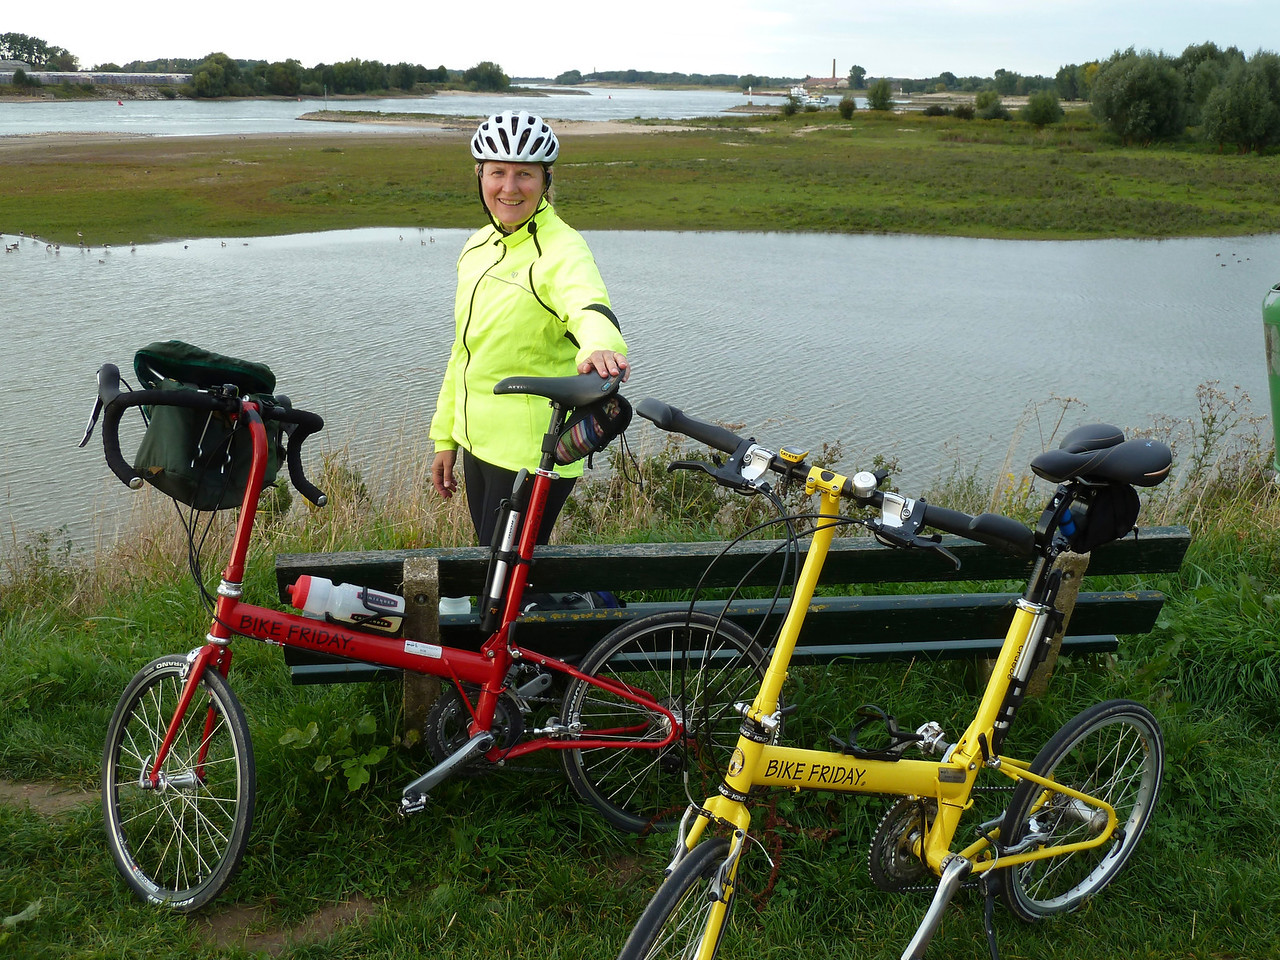 Another wonderful Bike Friday excursion outside of Nijmegen along the Rhein and its dykes.